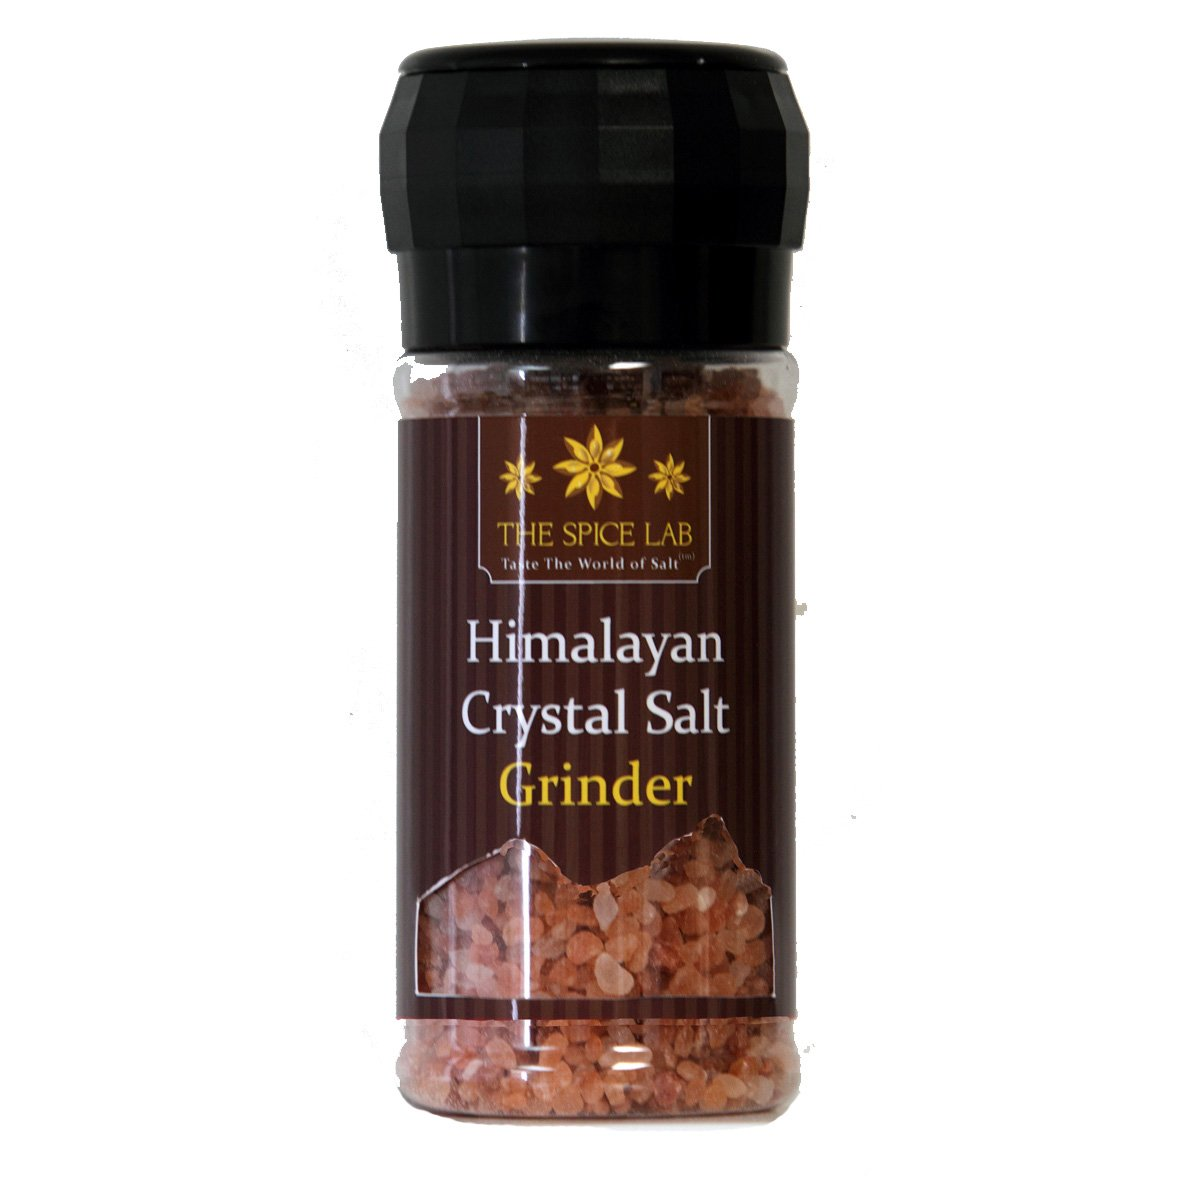 The Spice Lab Himalayan Pink Salt - Coarse Gourmet Pure Crystal - Nutrient and Mineral Dense for Health - Kosher and Natural Certified Food Grade - 1 Pound Grinder